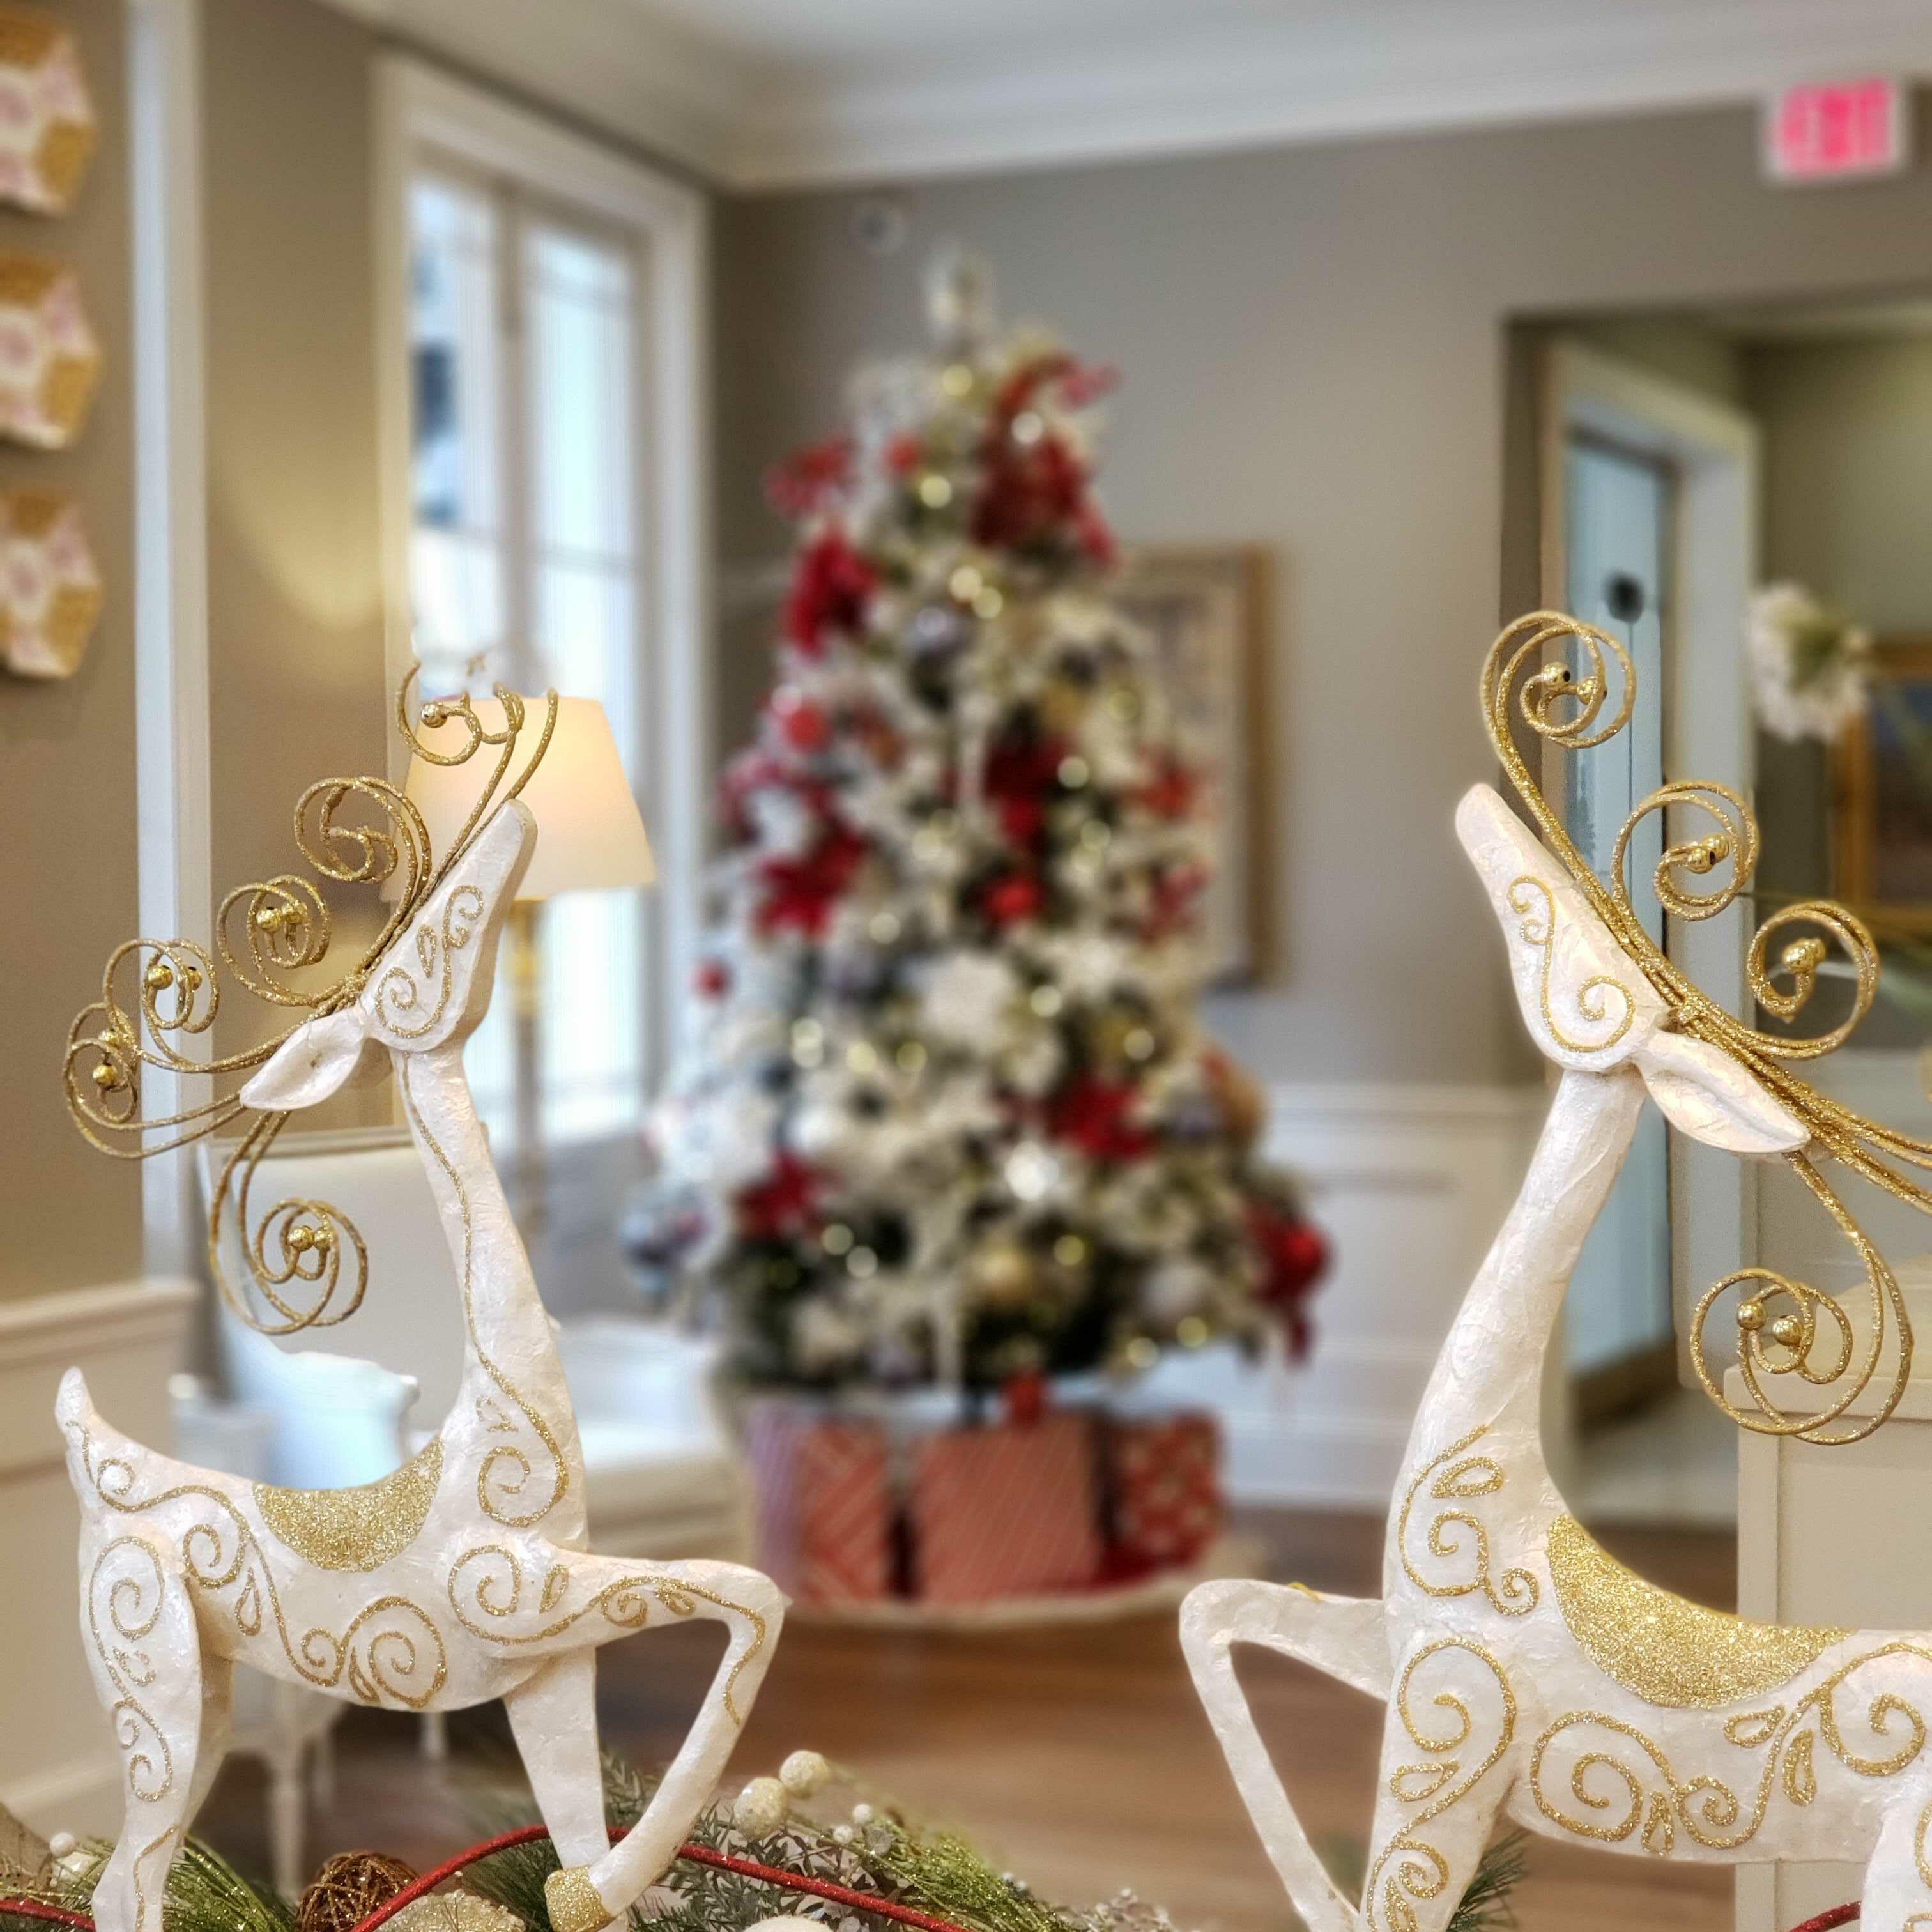 Christmas decorations at St. James Hotel